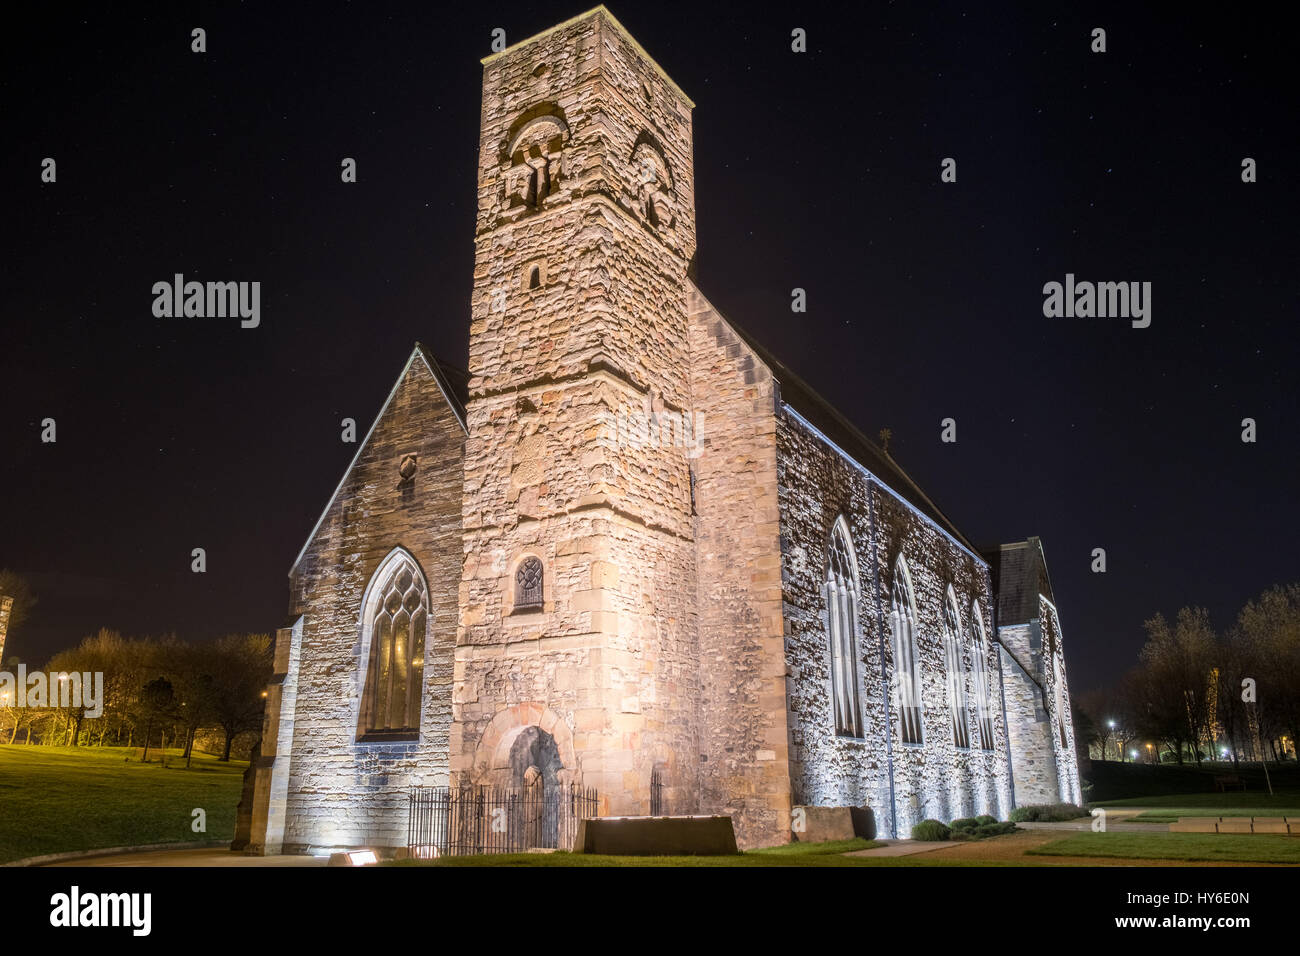 St Peter's Church, Monkwearmouth - Stock Image